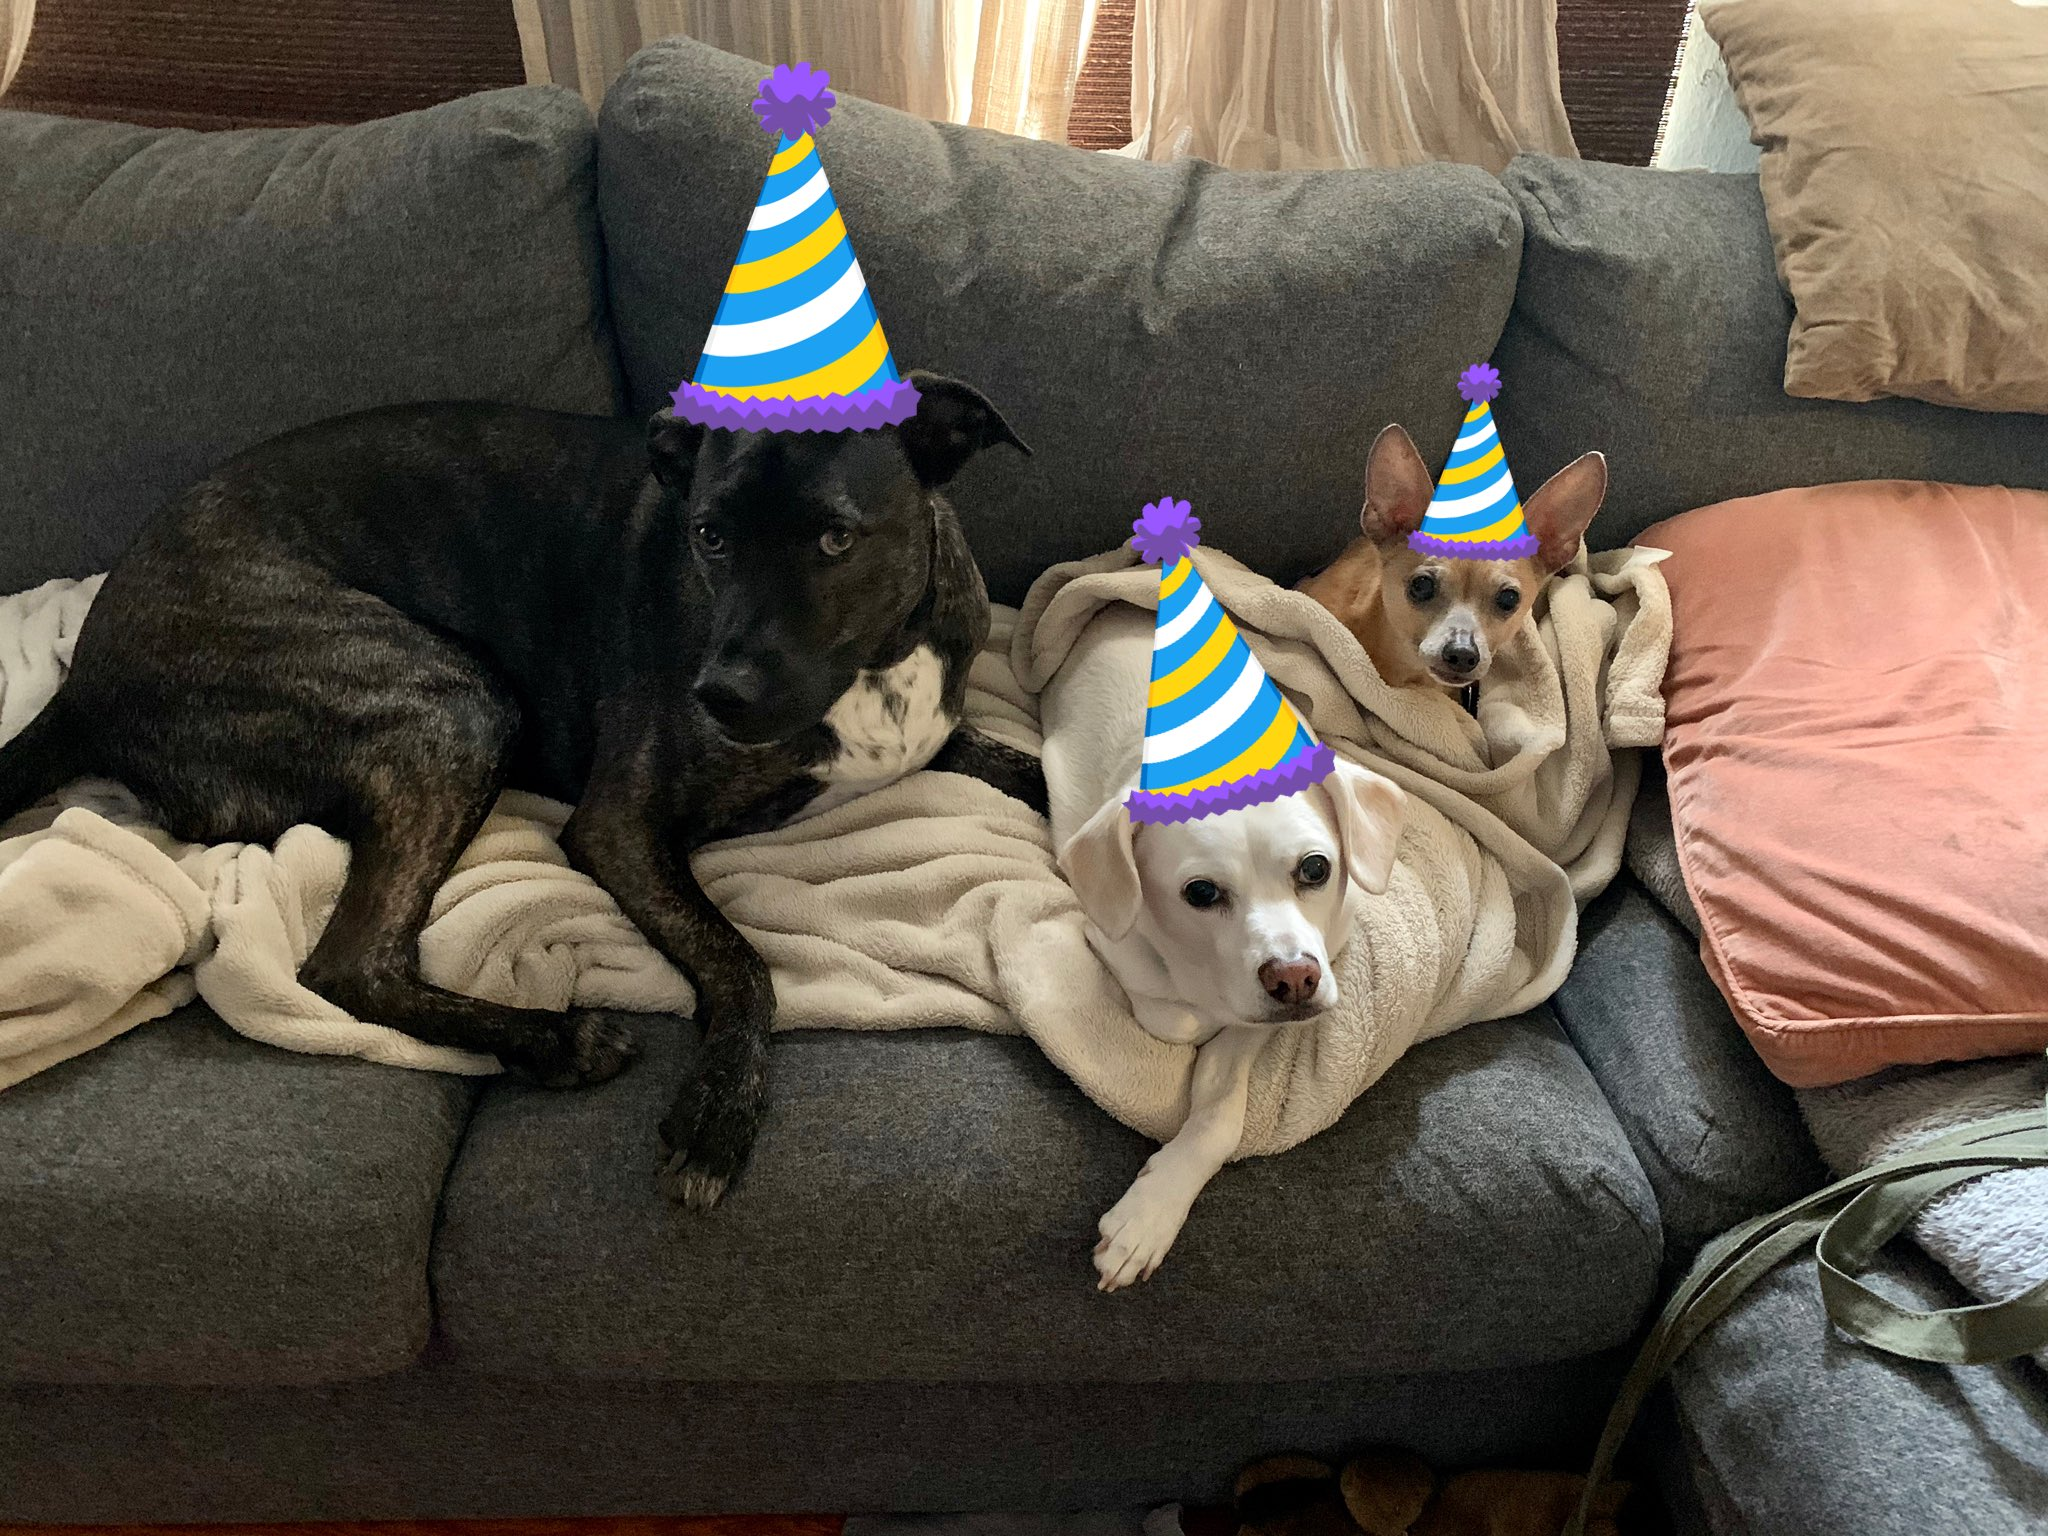 Happy Birthday to Prince from JB, Alice and Franklin!